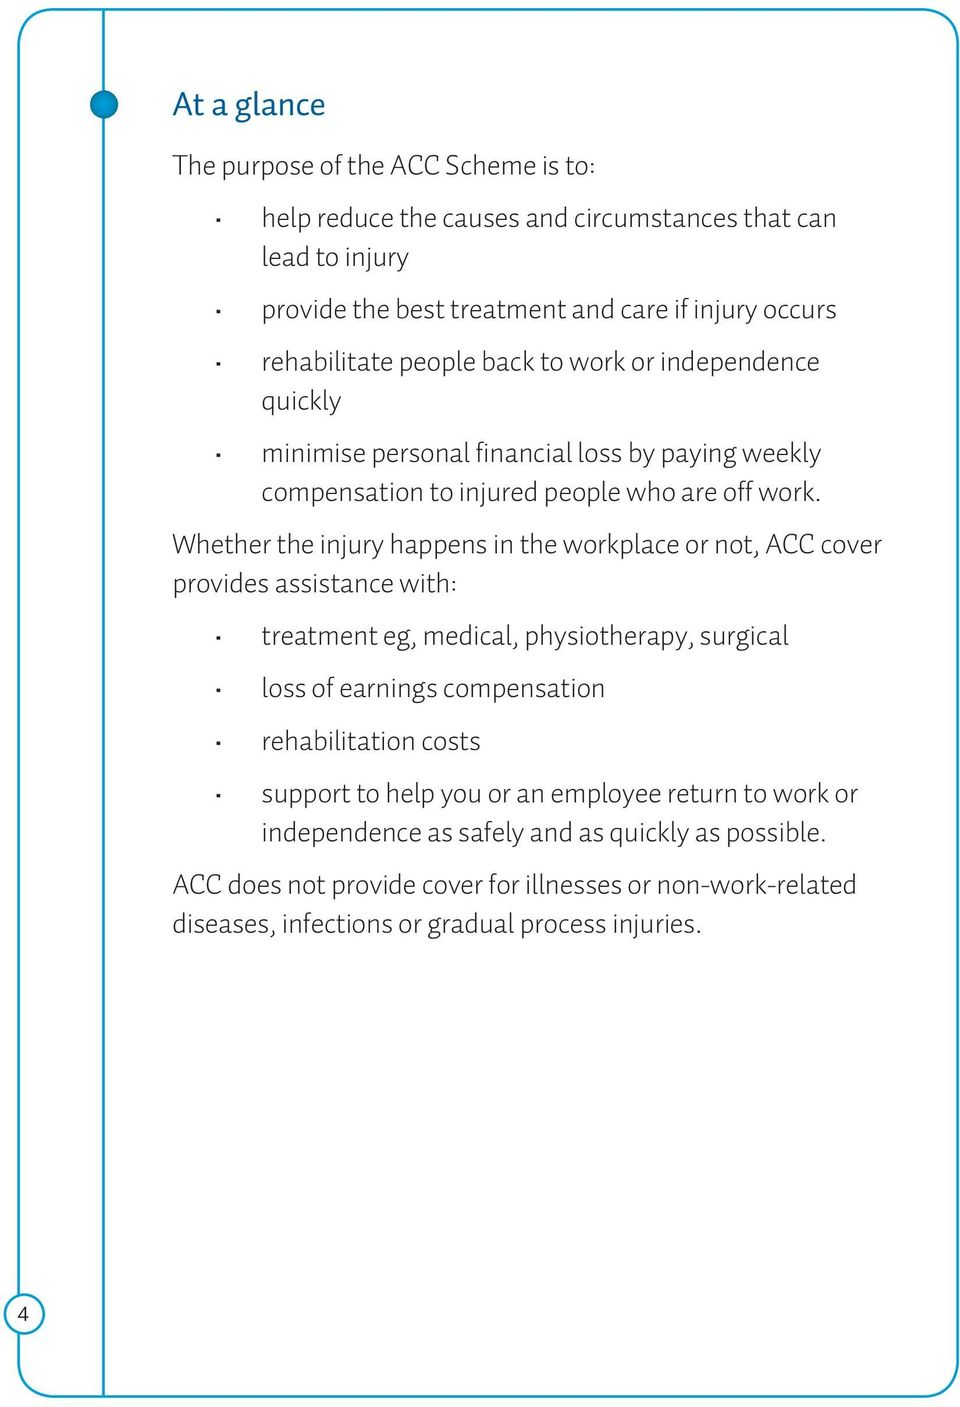 Whether the injury happens in the workplace or not, ACC cover provides assistance with: treatment eg, medical, physiotherapy, surgical loss of earnings compensation rehabilitation